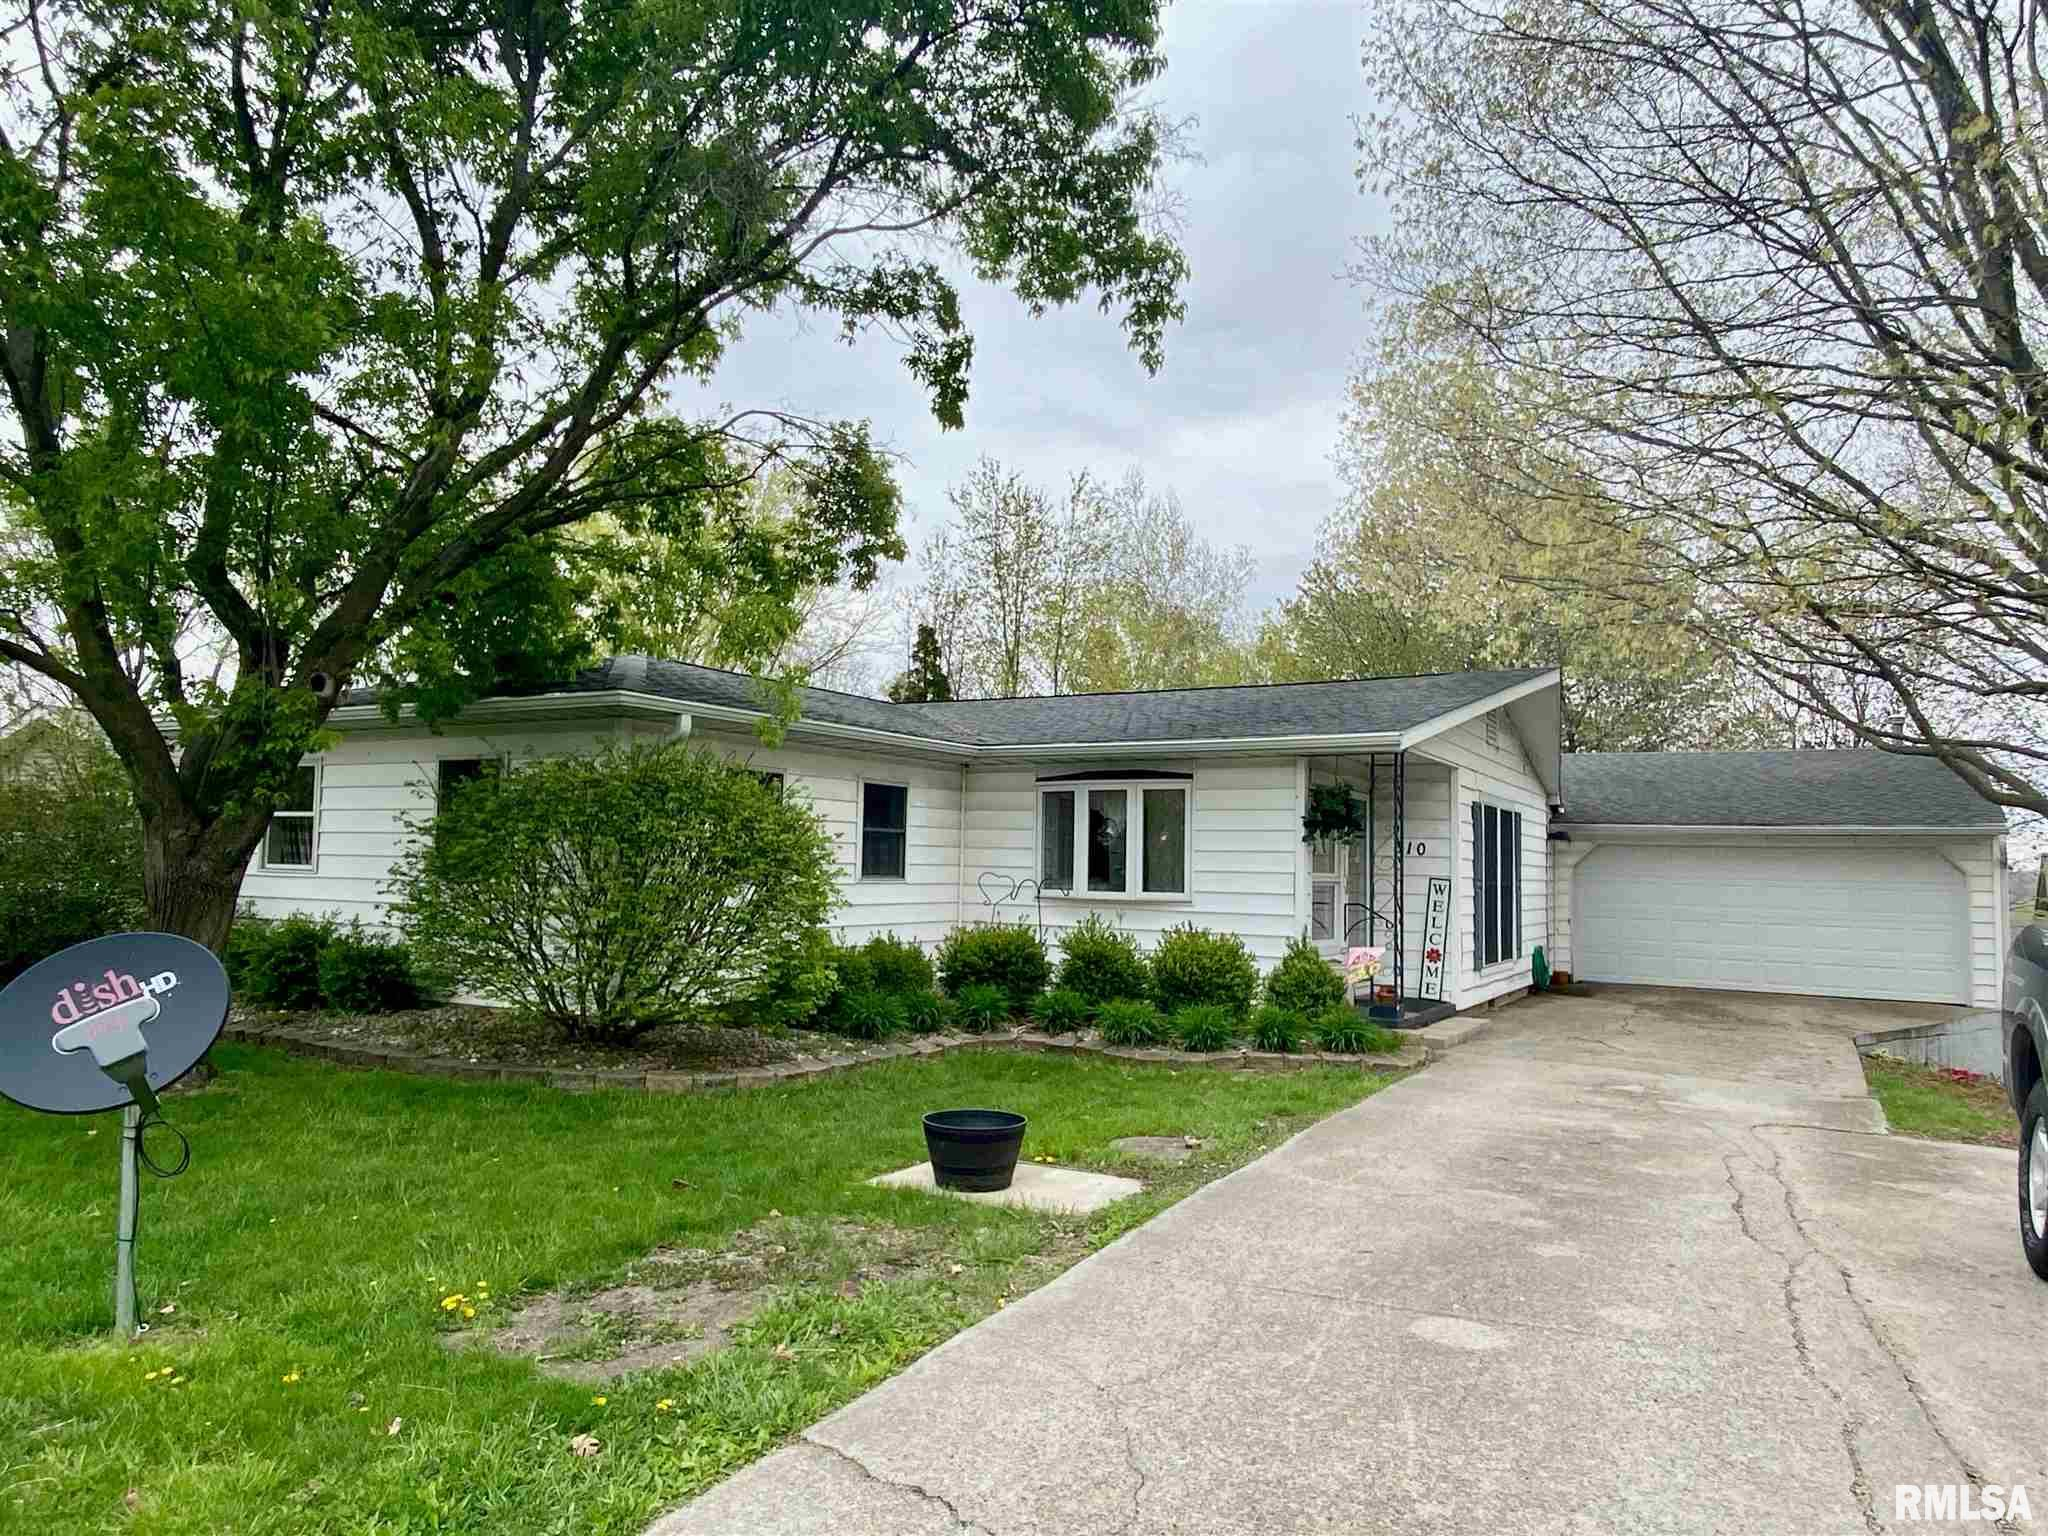 610 N 9TH Property Photo - Petersburg, IL real estate listing